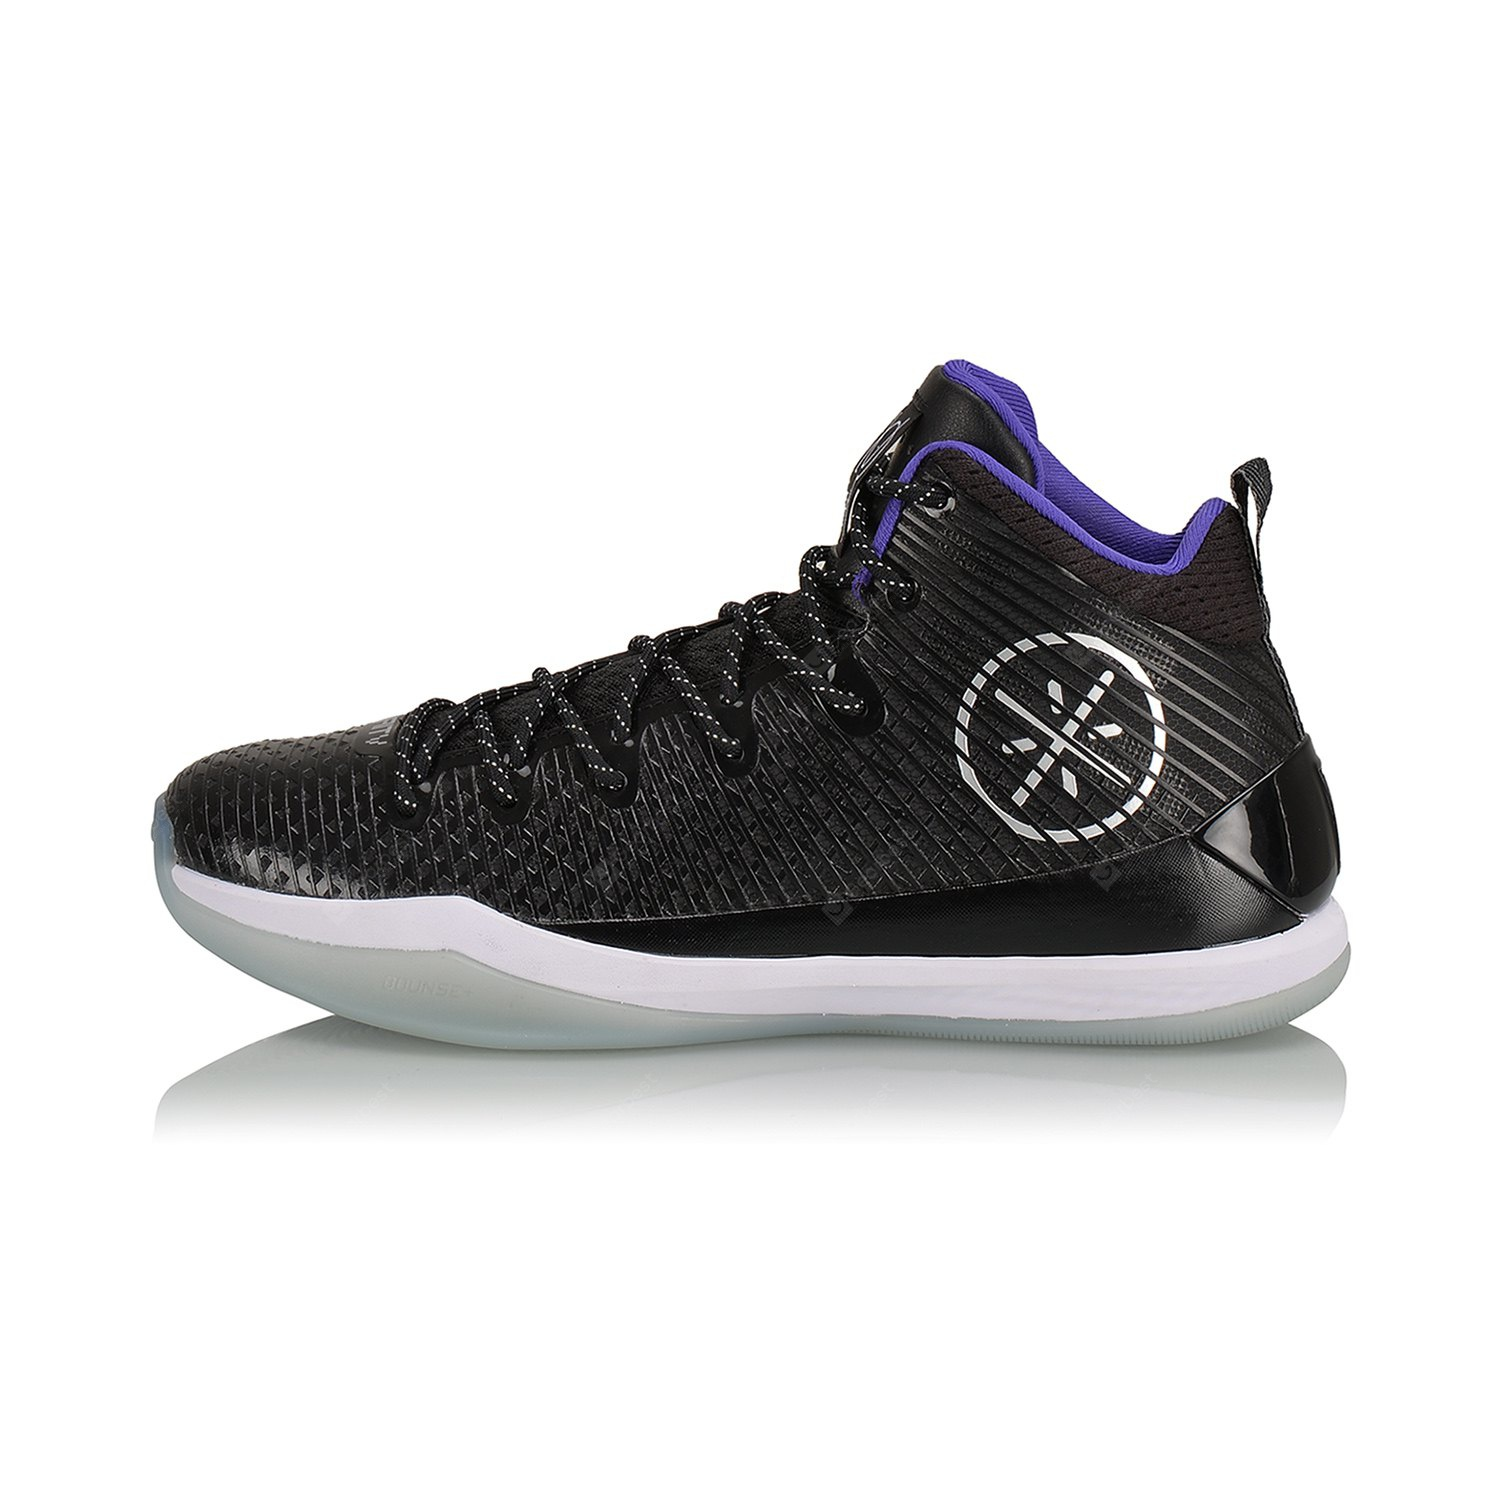 Li-ning Men's Wade Professional ALL IN TEAM 5 Basketball Shoes ABAN017-2